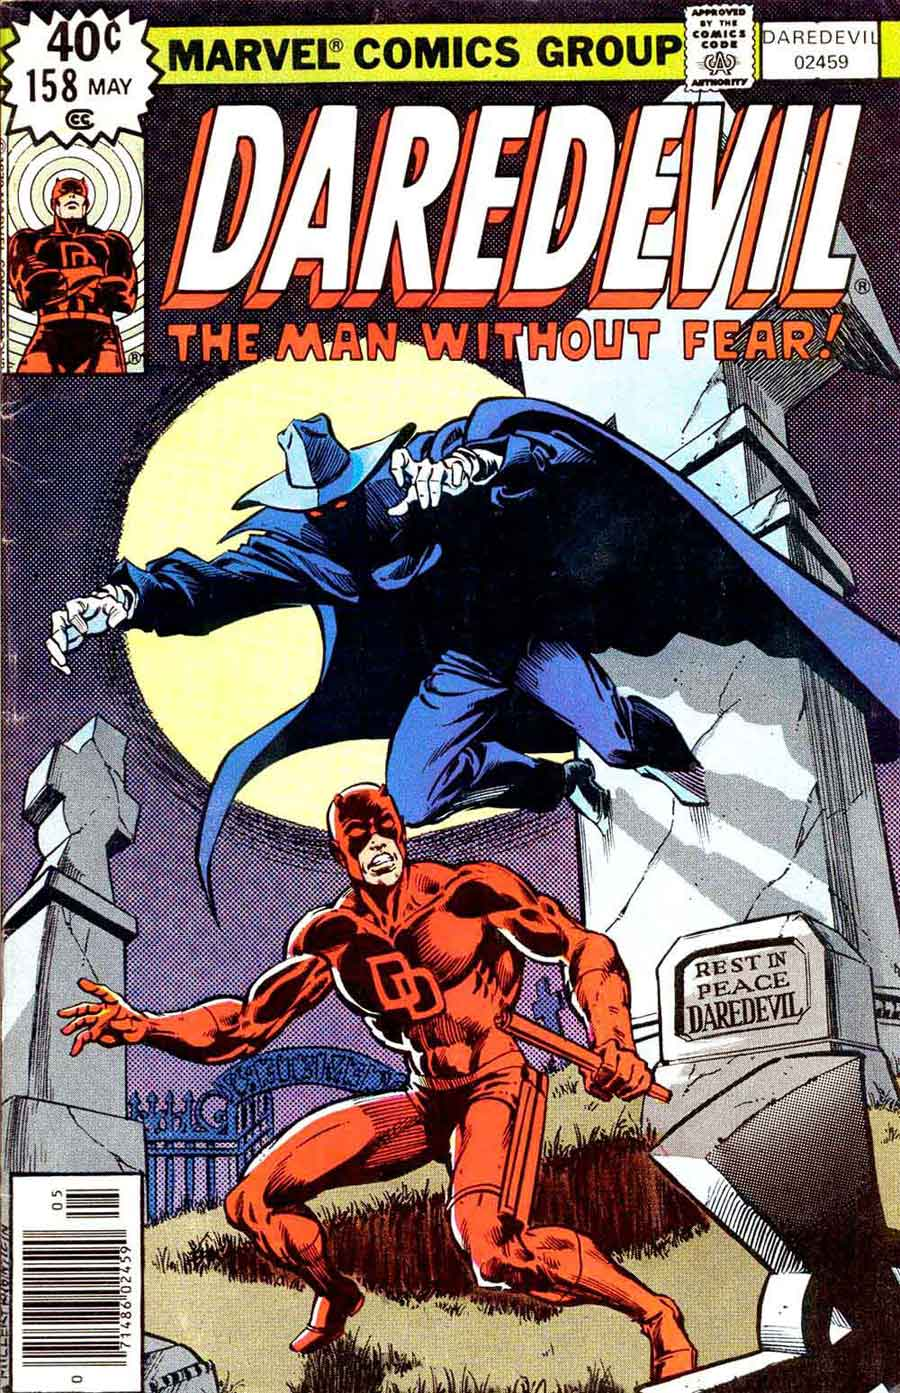 Daredevil v1 #158 marvel comic book cover art by Frank Miller